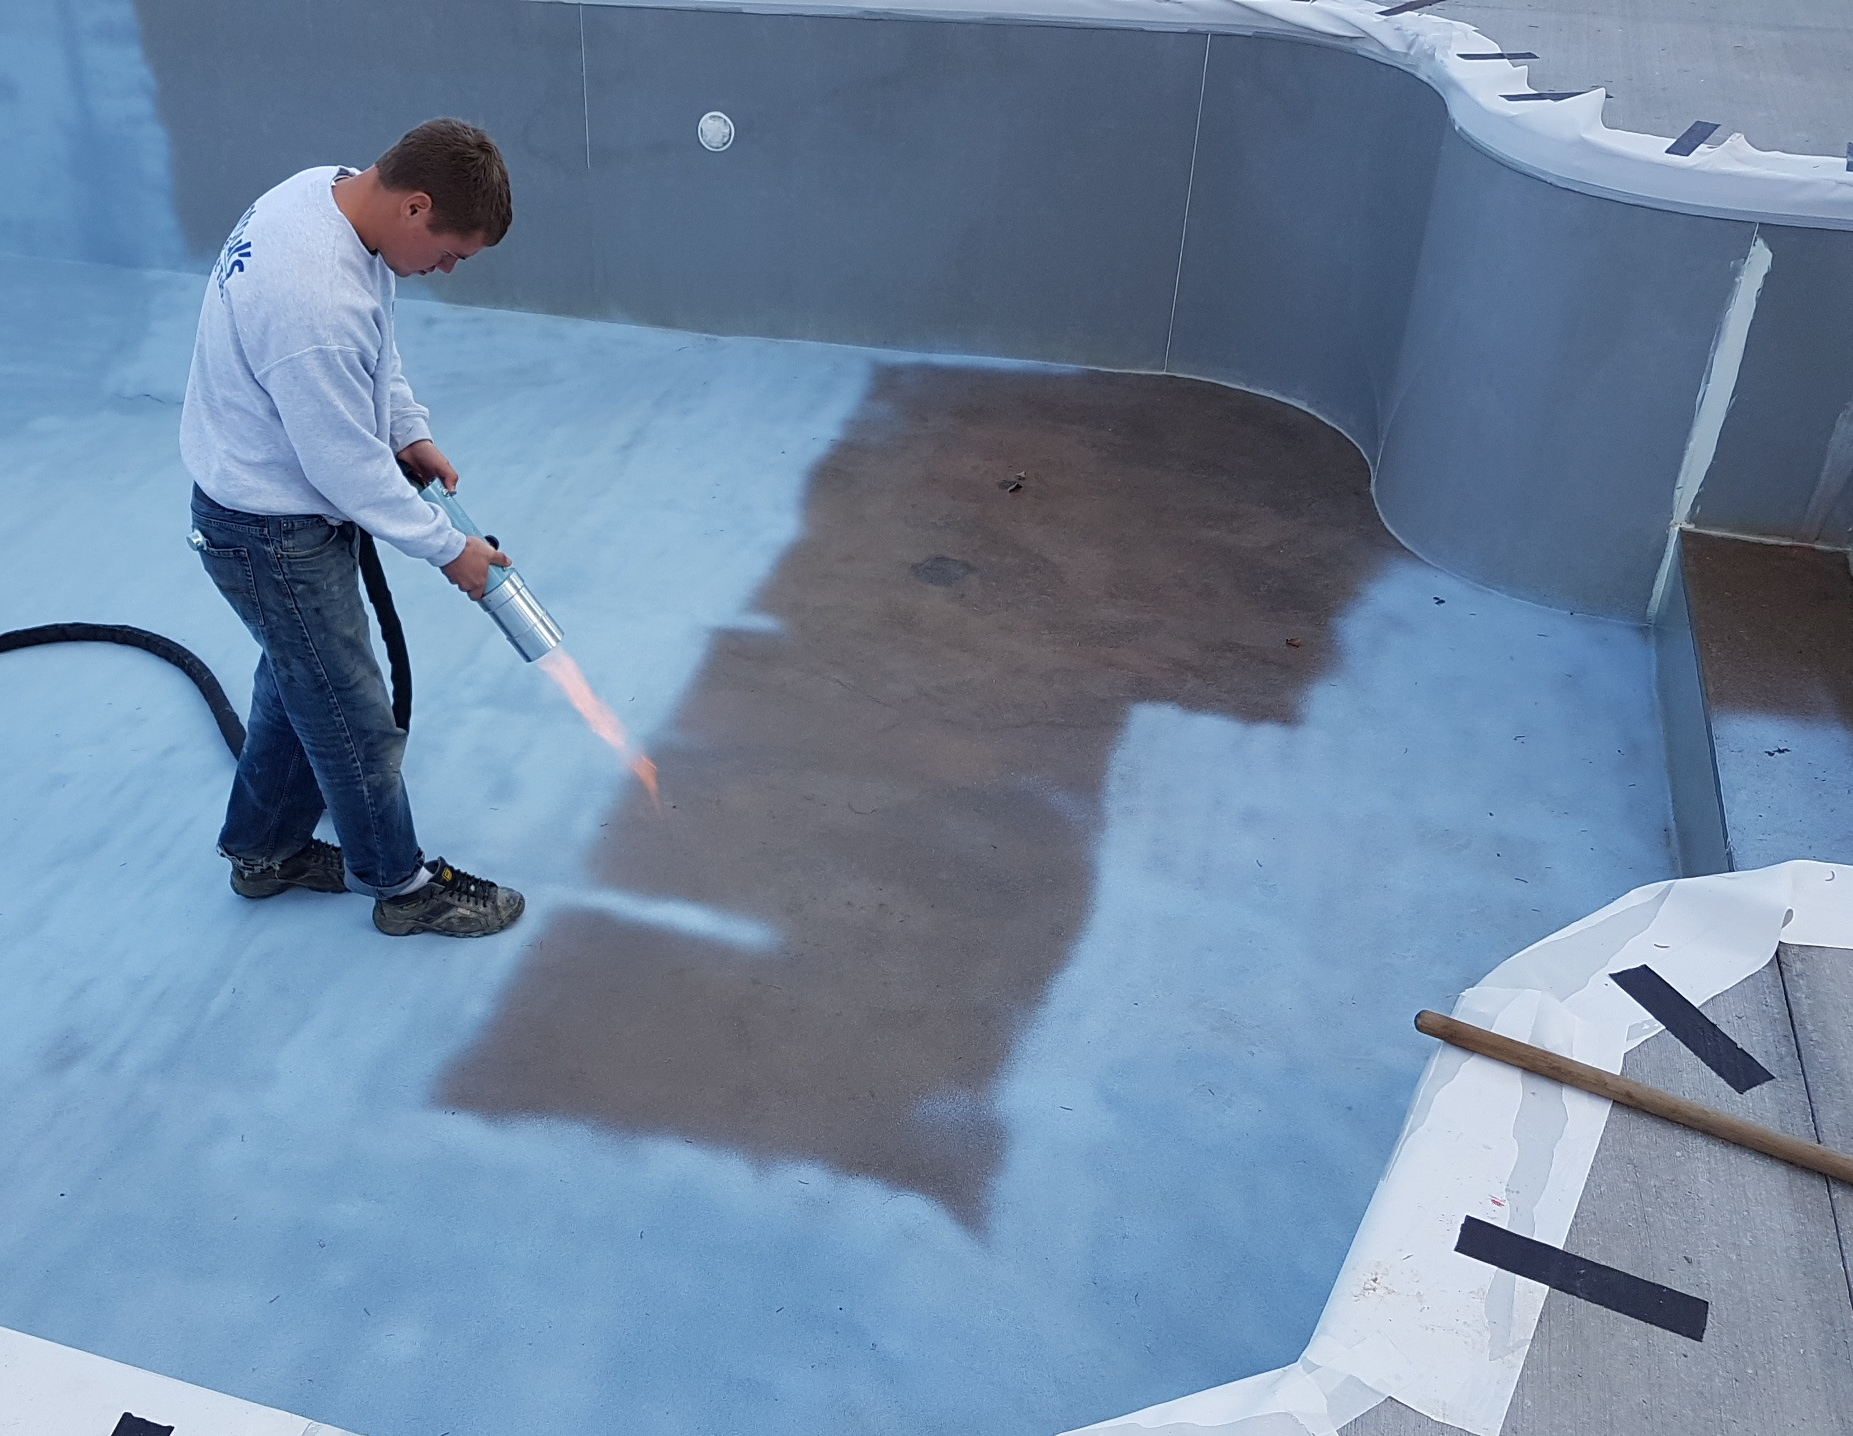 Ontario Pool Coating Installs ecoFinish onto composite walls and concrete base hybrid pool